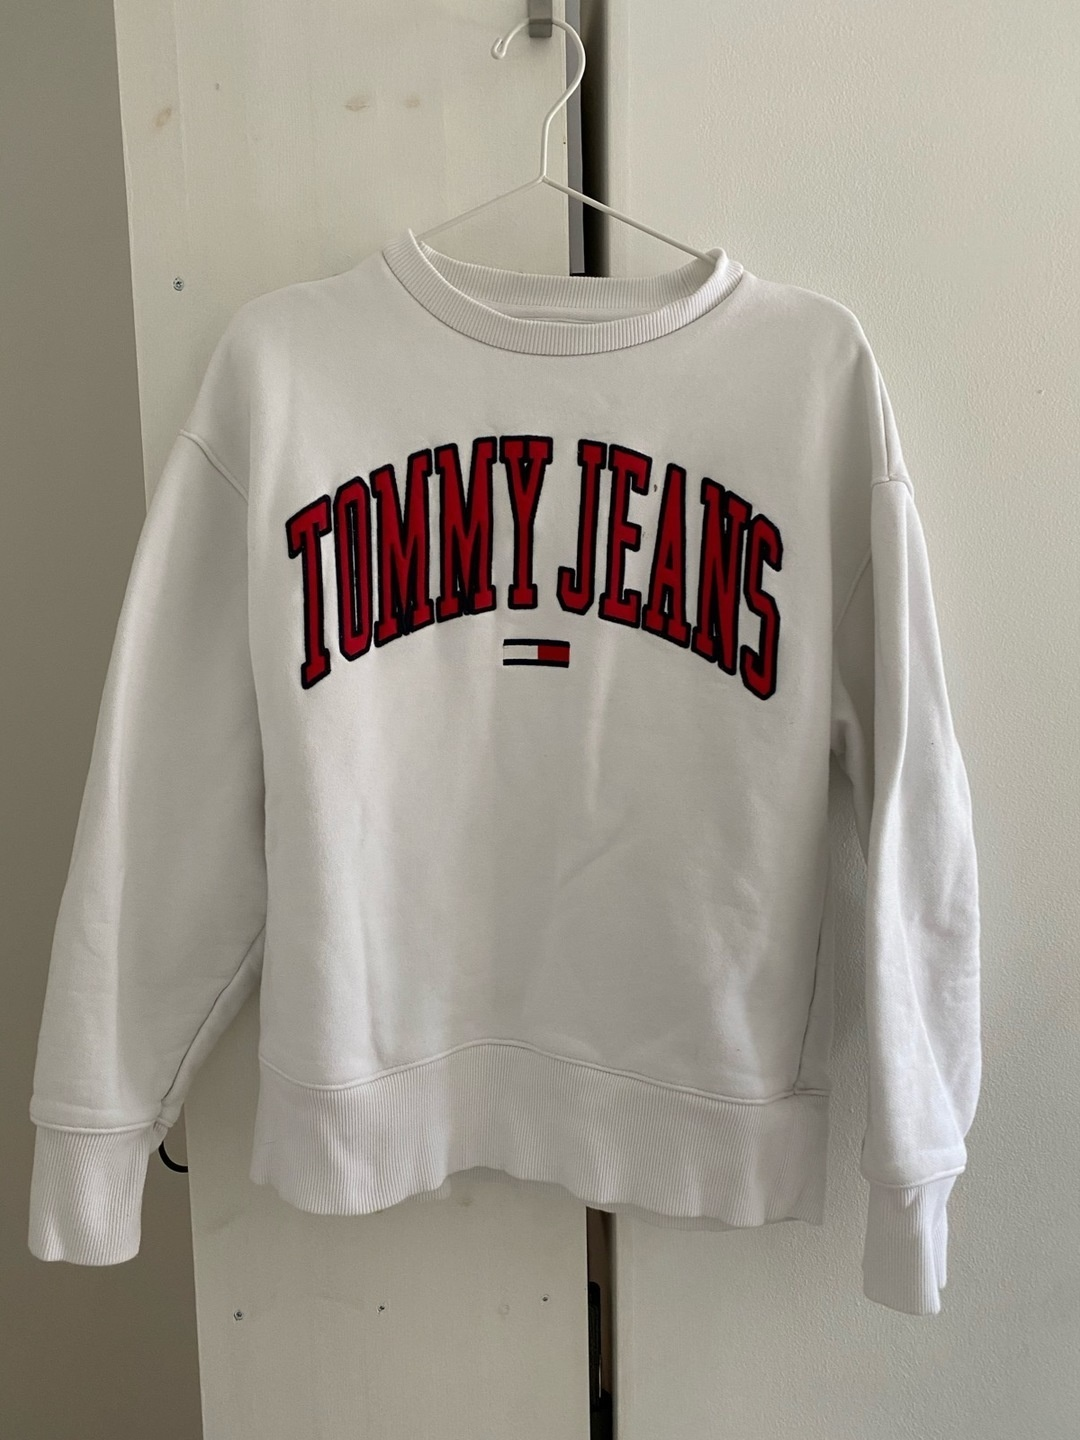 Women's hoodies & sweatshirts - TOMMY JEANS photo 1